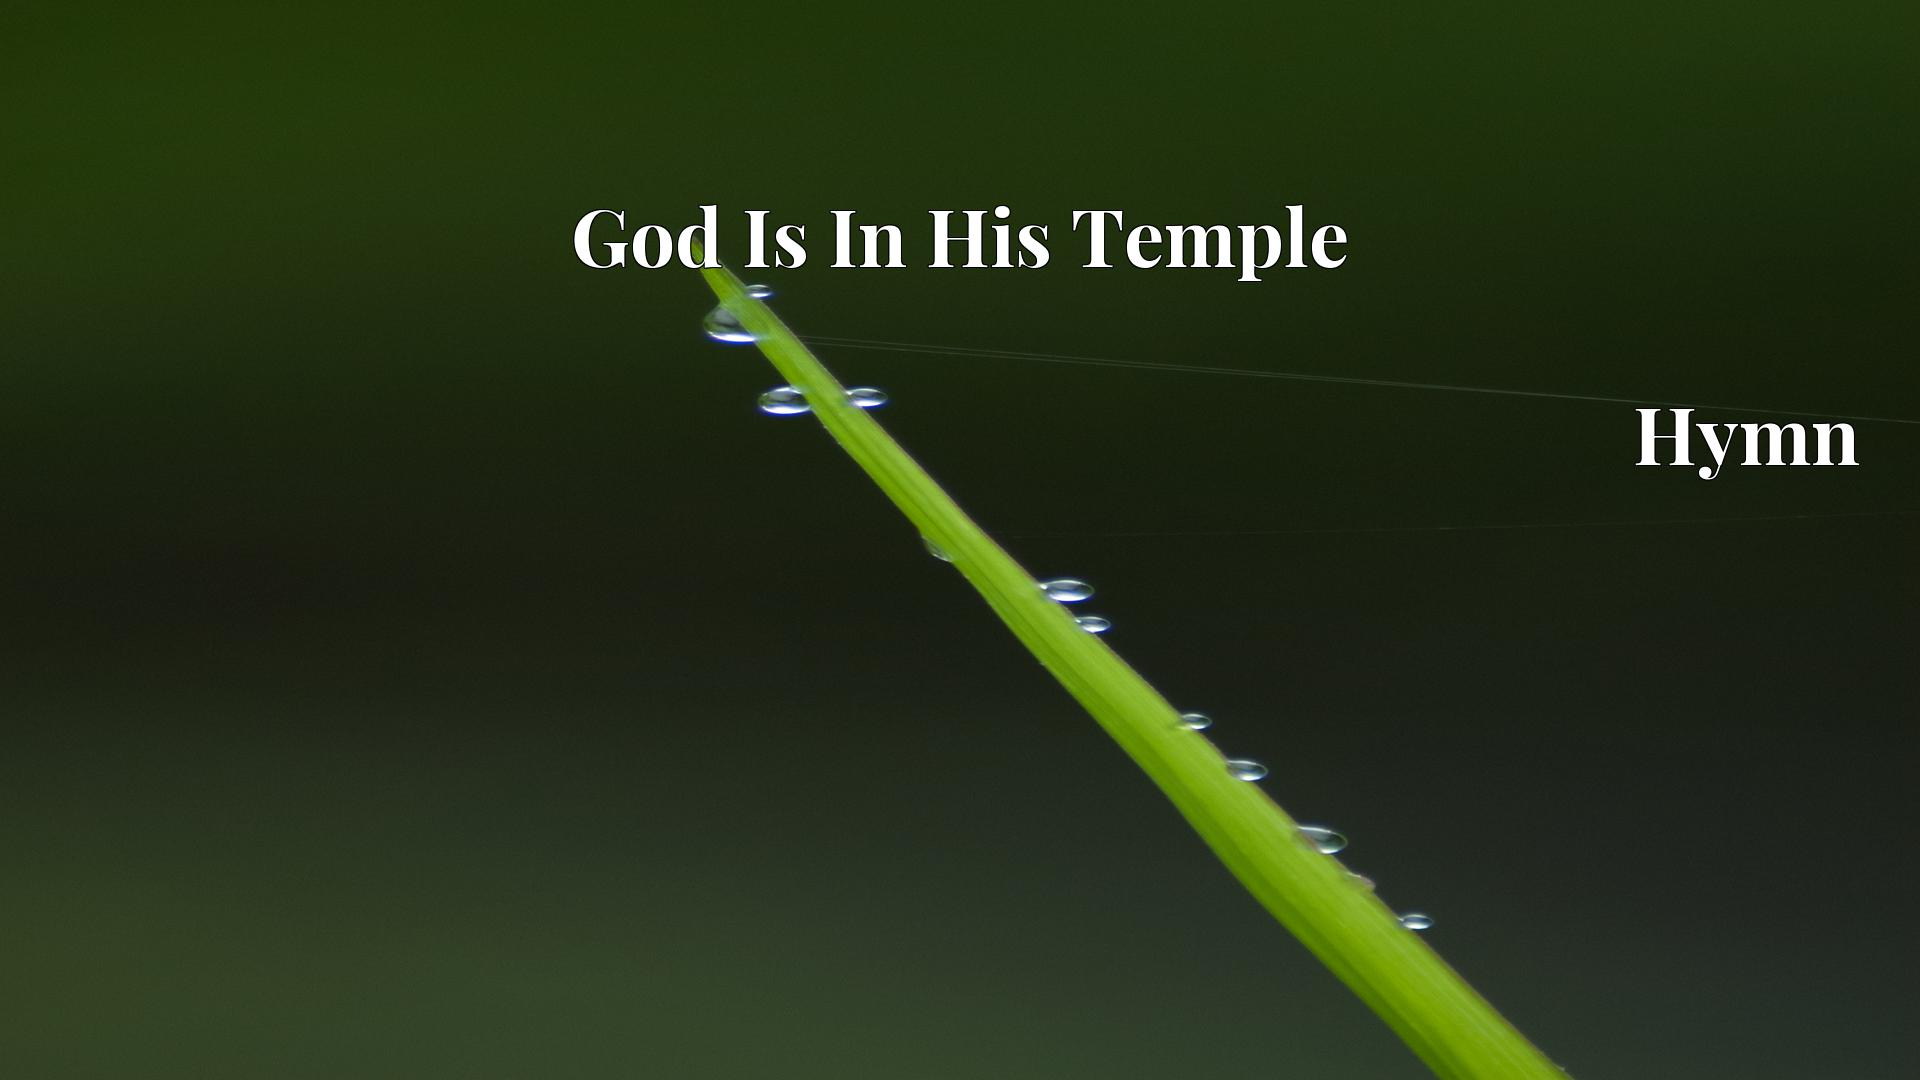 God Is In His Temple - Hymn